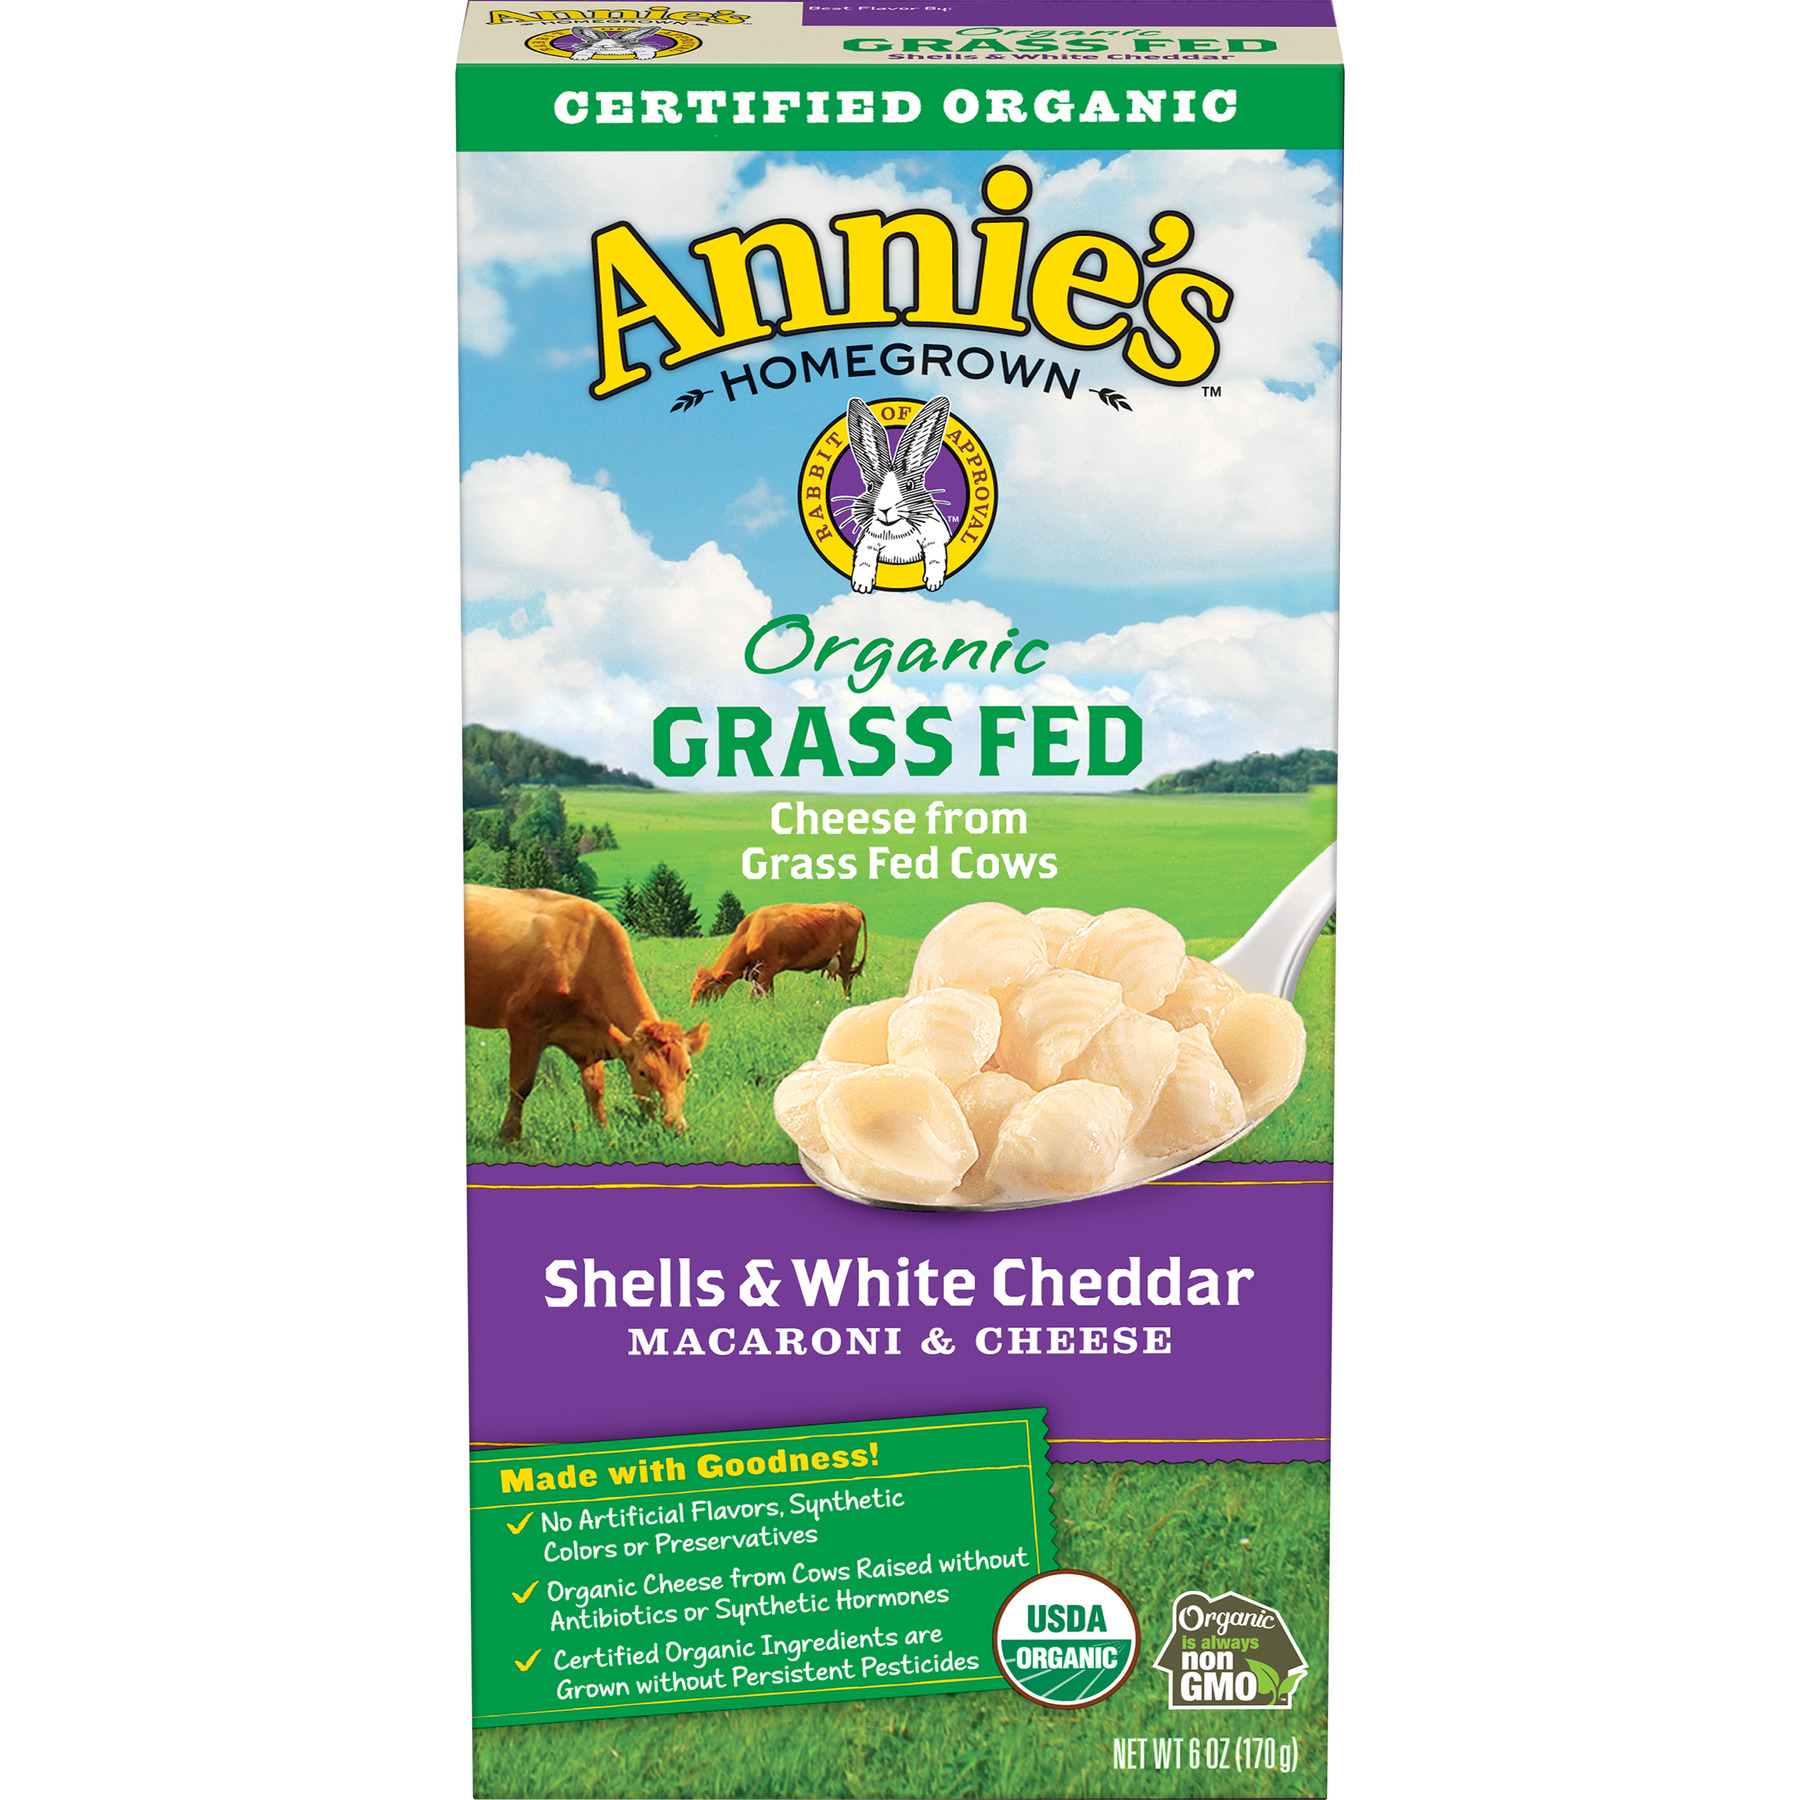 Annie's Organic Grass Fed Shells & White Cheddar Mac & Cheese 6 oz